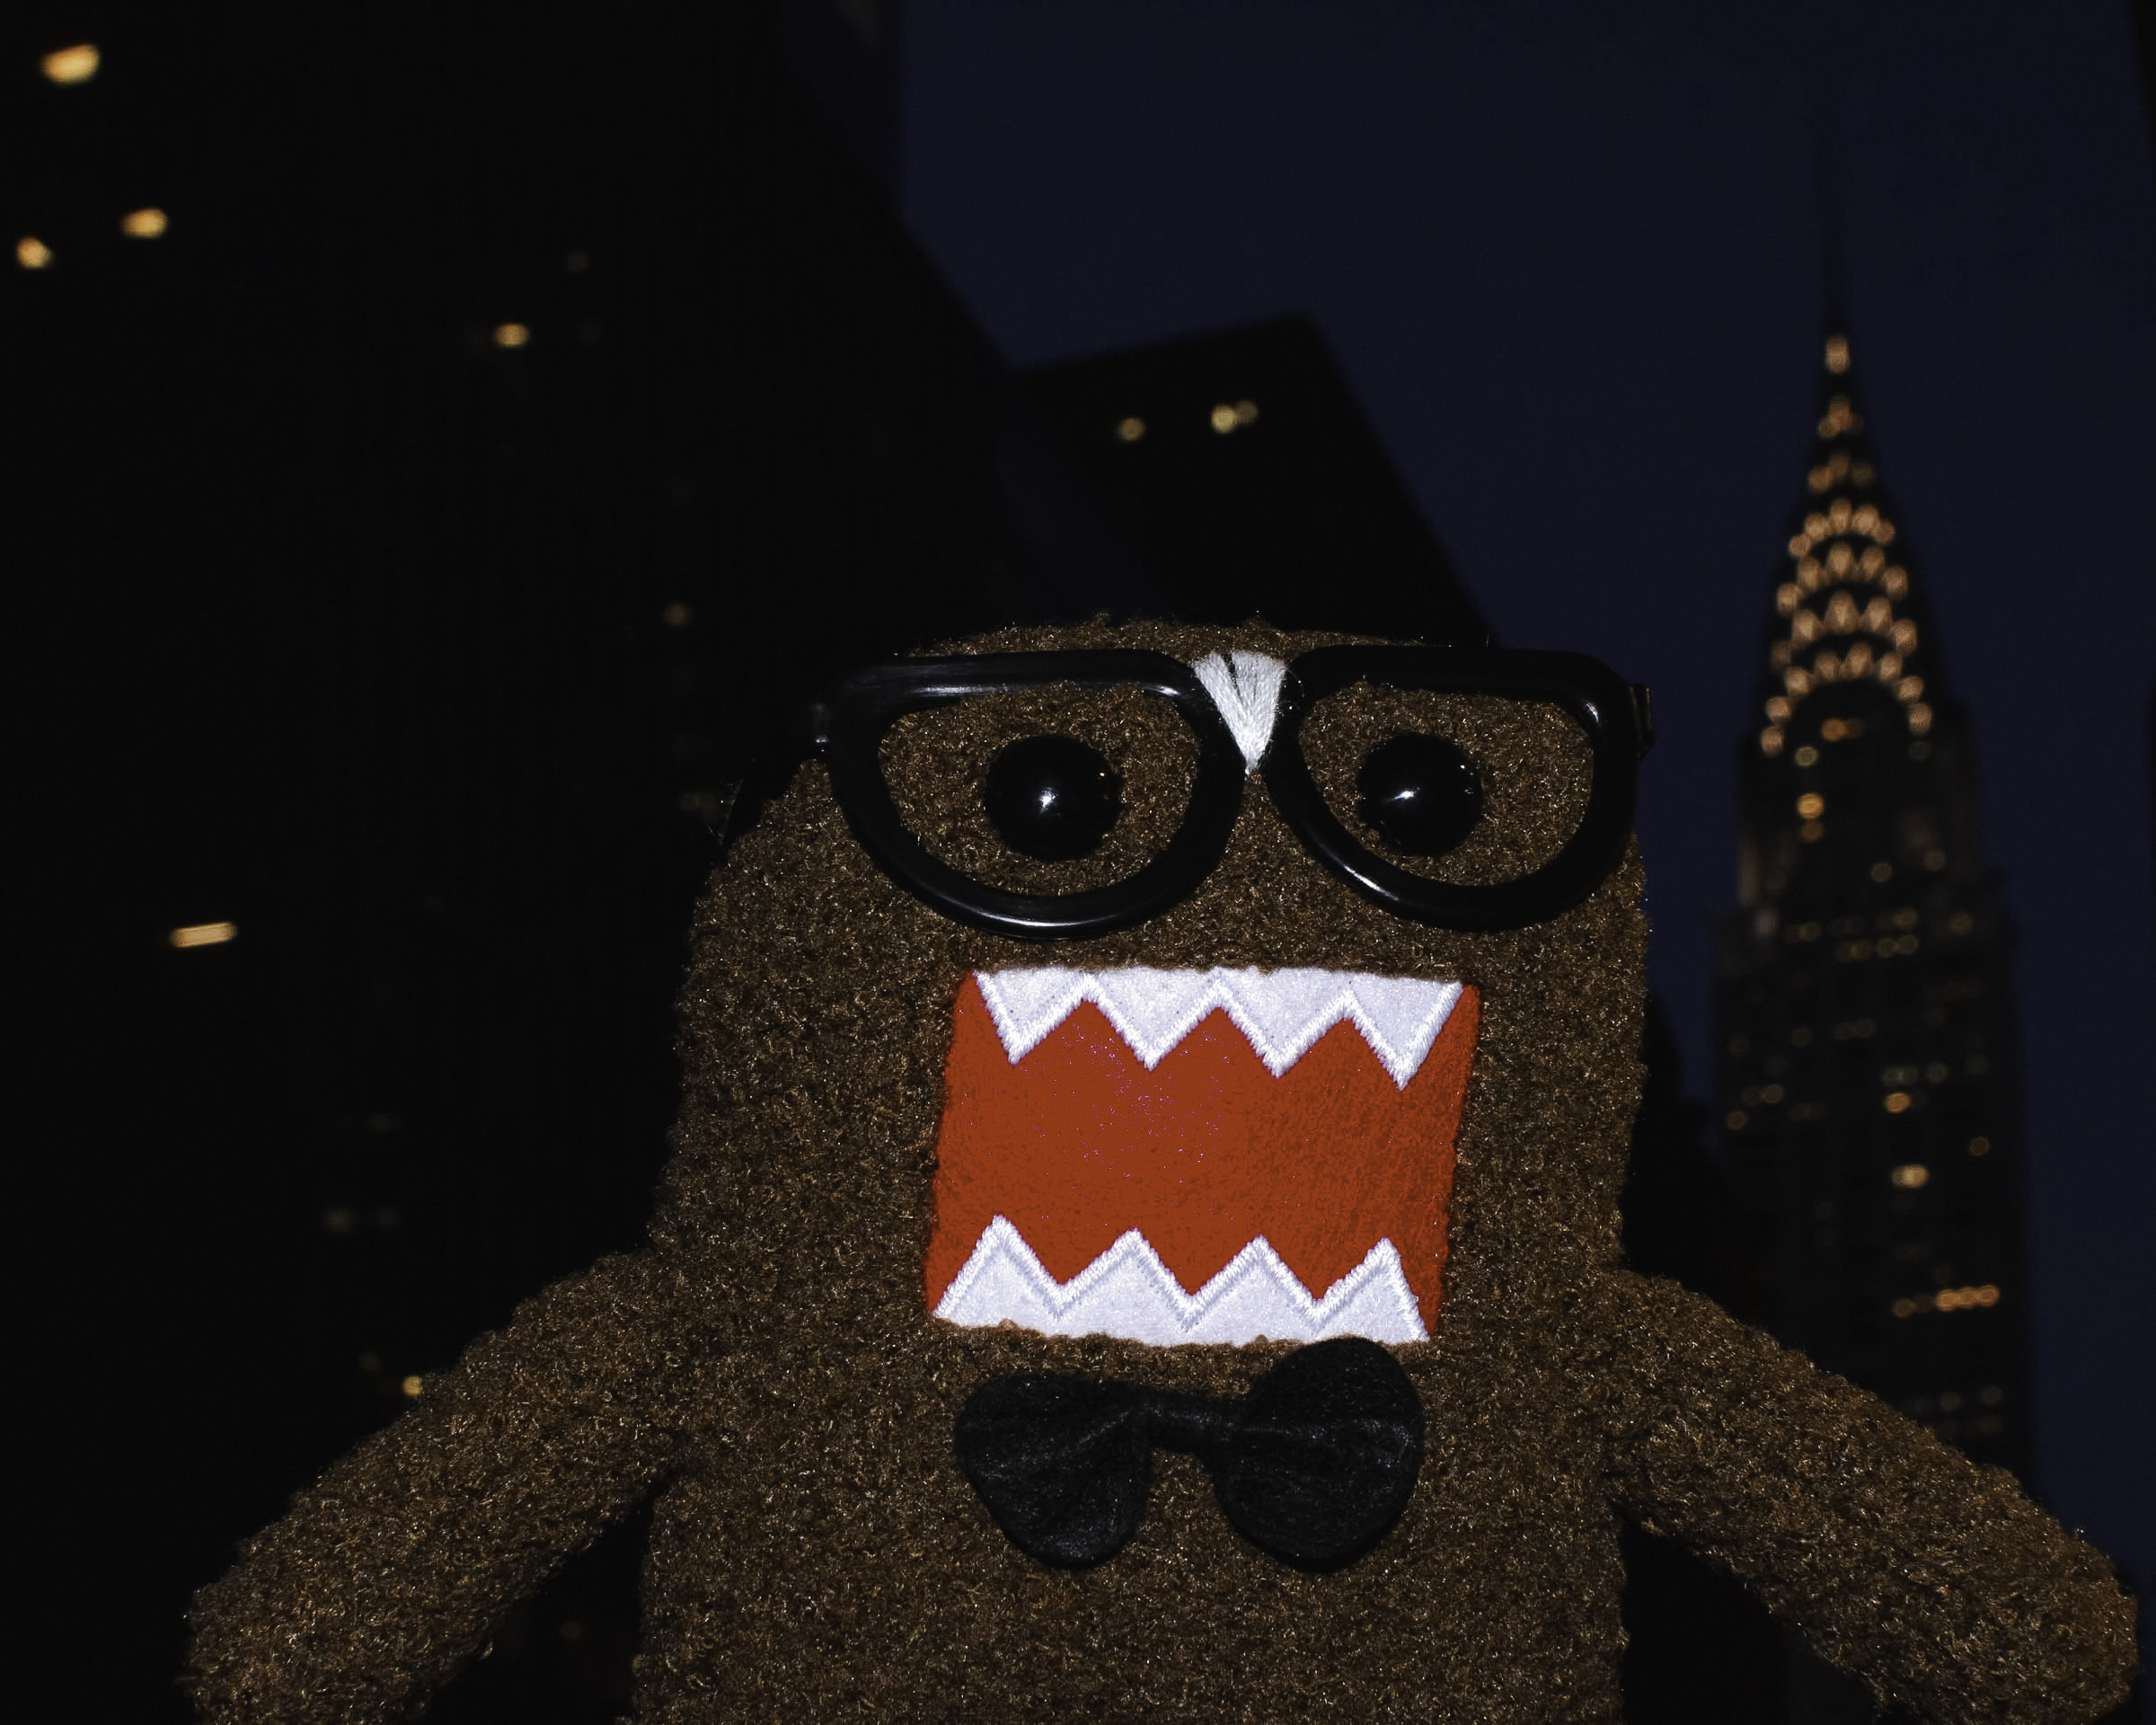 Domo goes sightseeing in a very cold New York City.